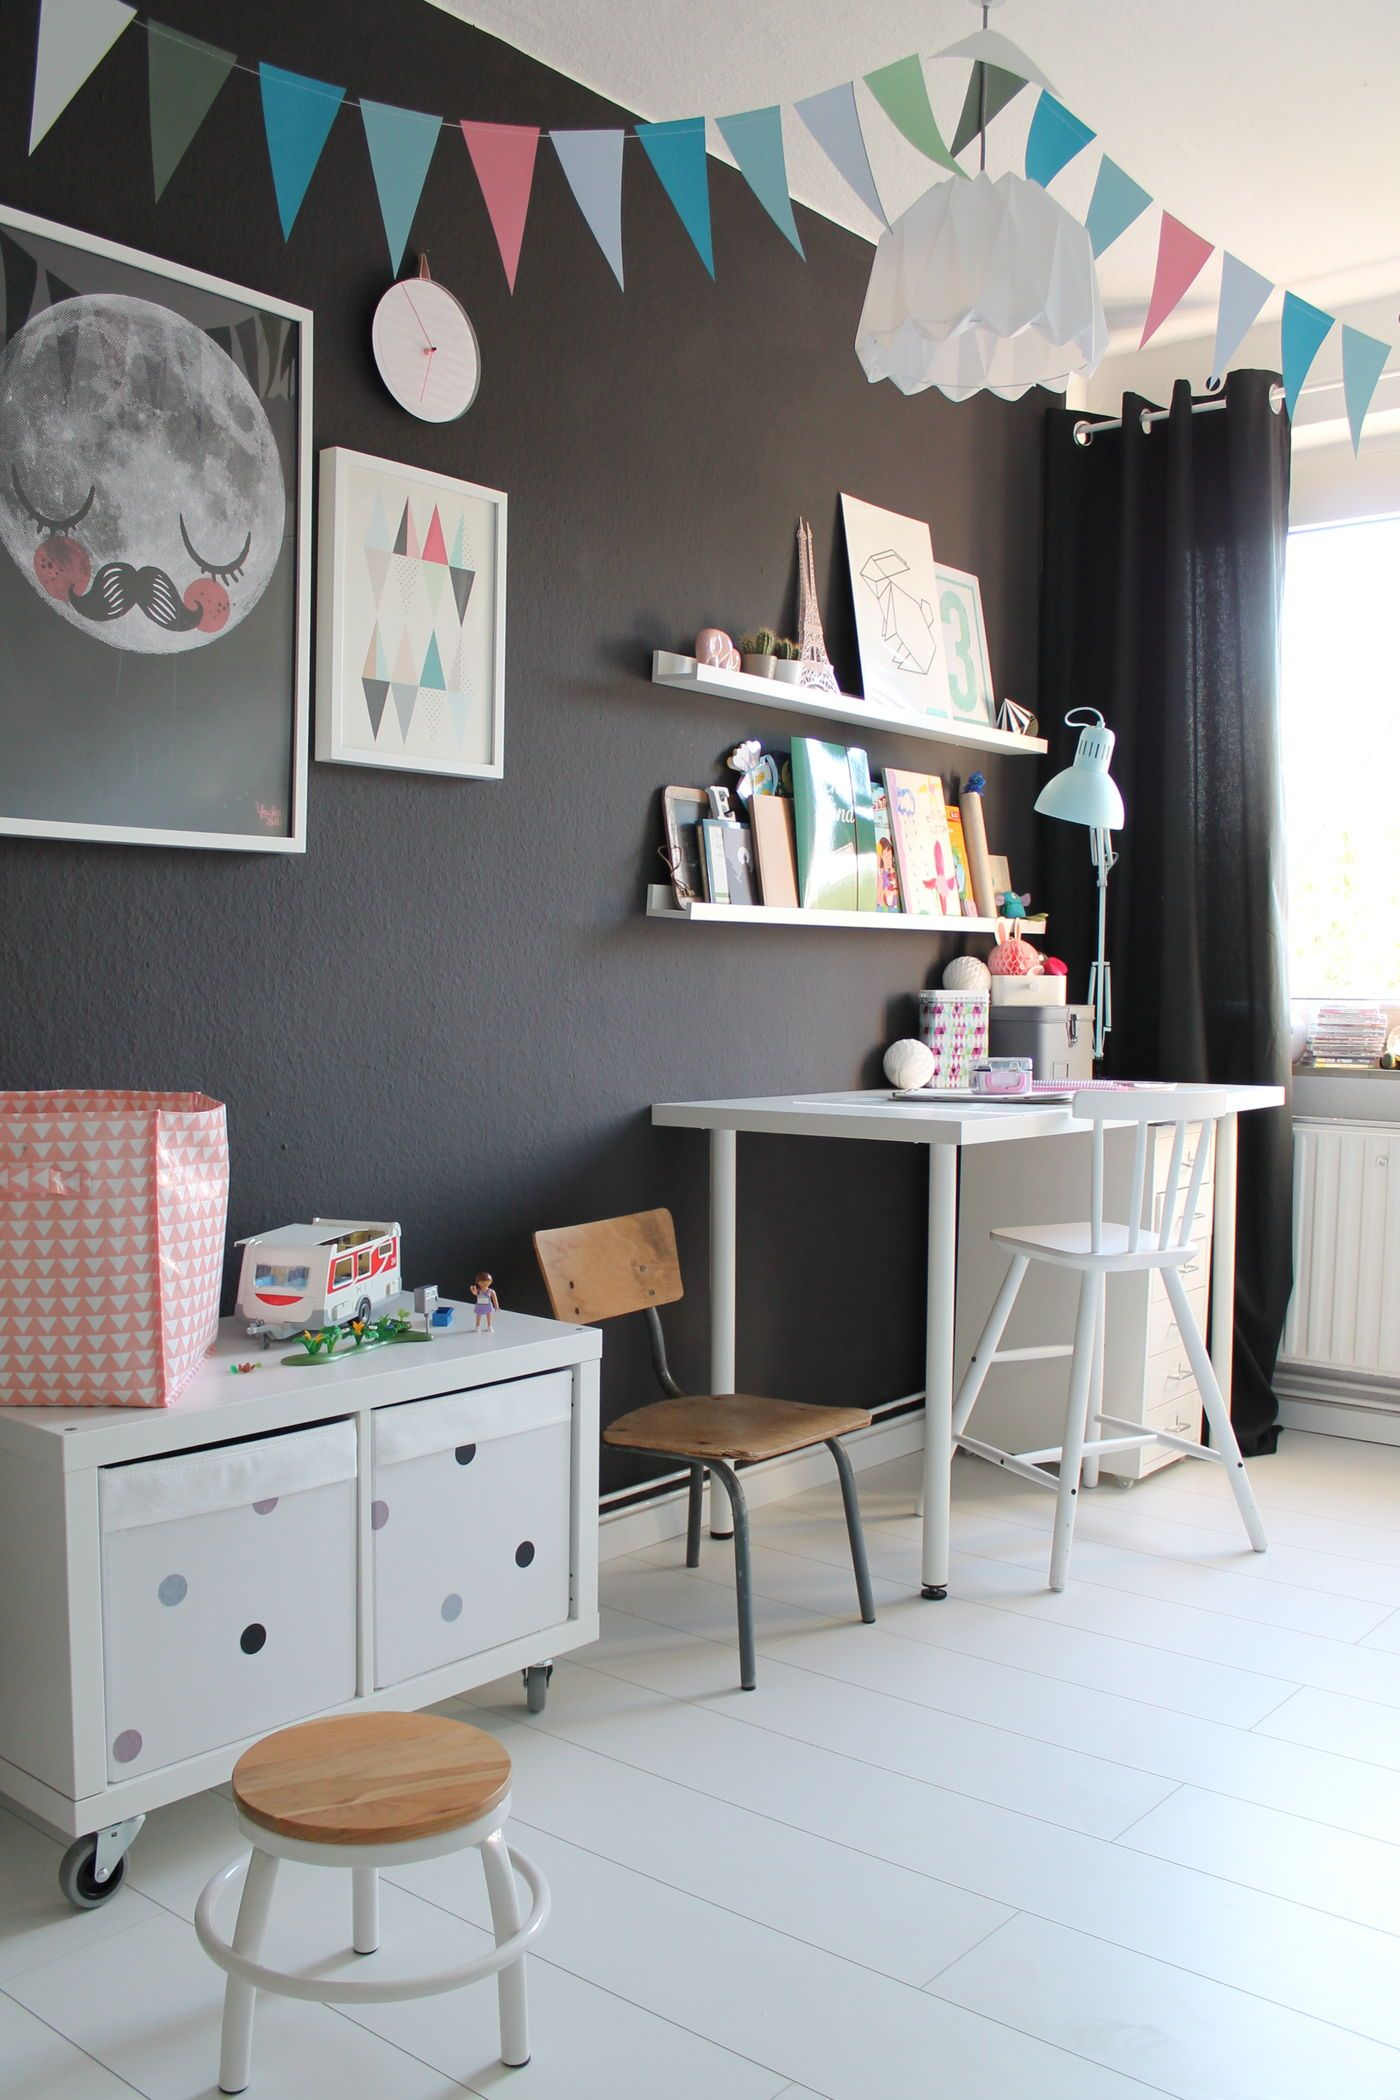 die sch nsten ideen f r die wandfarbe im kinderzimmer. Black Bedroom Furniture Sets. Home Design Ideas